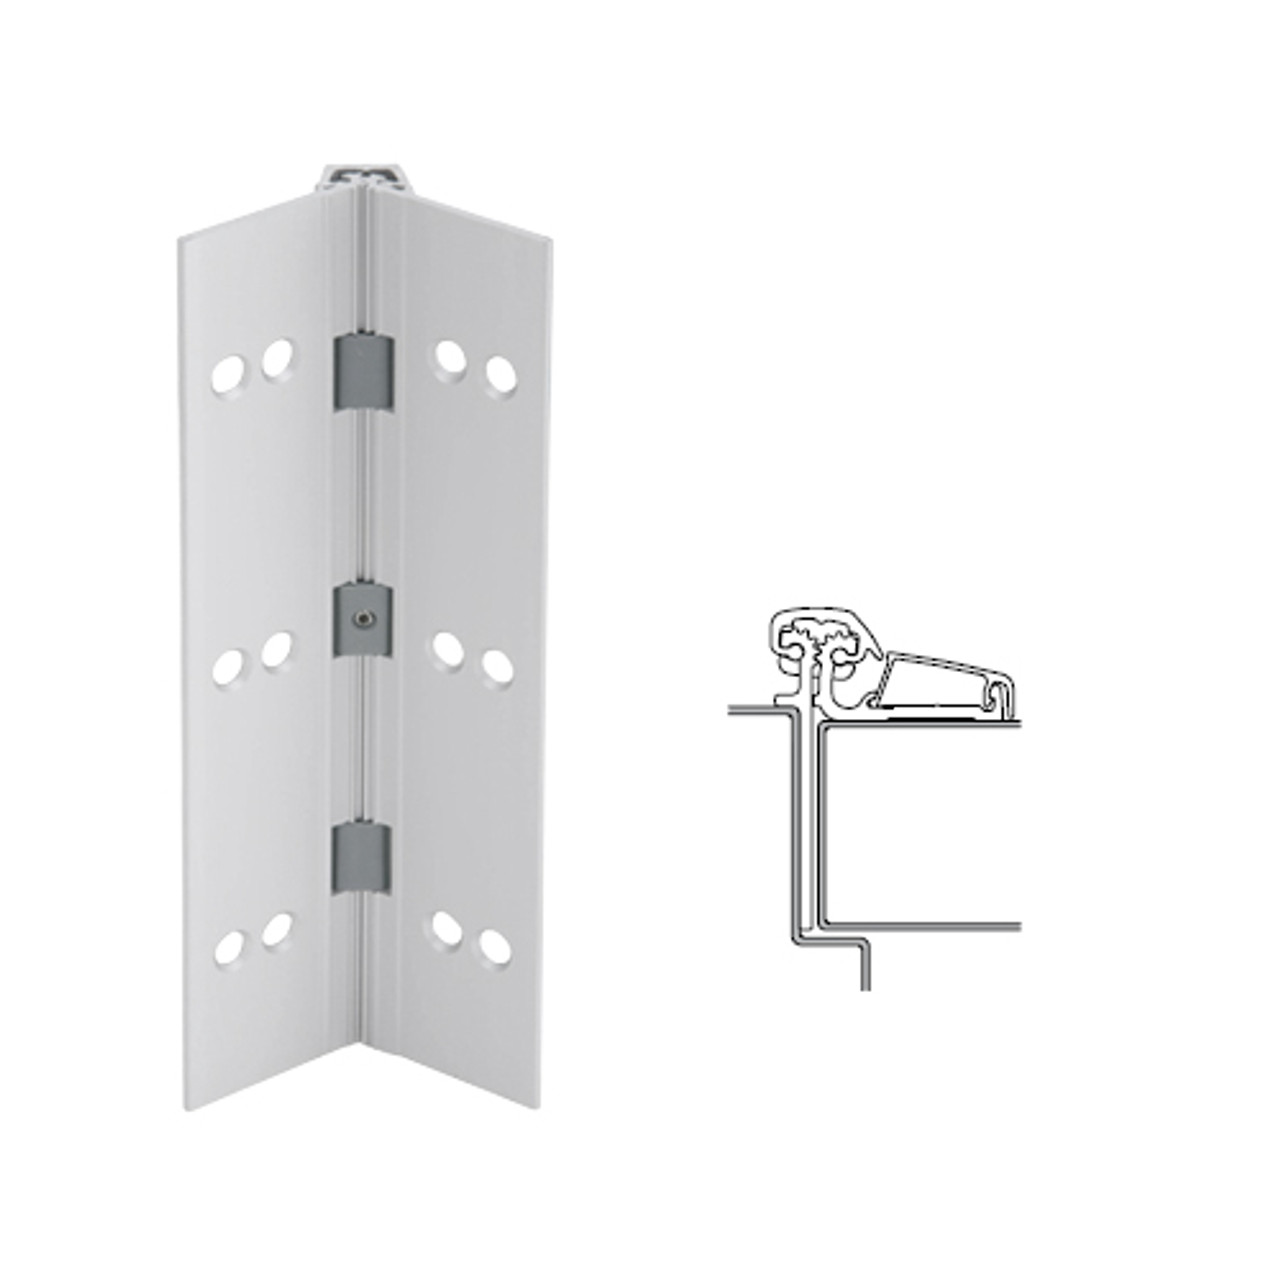 054XY-US28-83-SECHM IVES Adjustable Half Surface Continuous Geared Hinges with Security Screws - Hex Pin Drive in Satin Aluminum